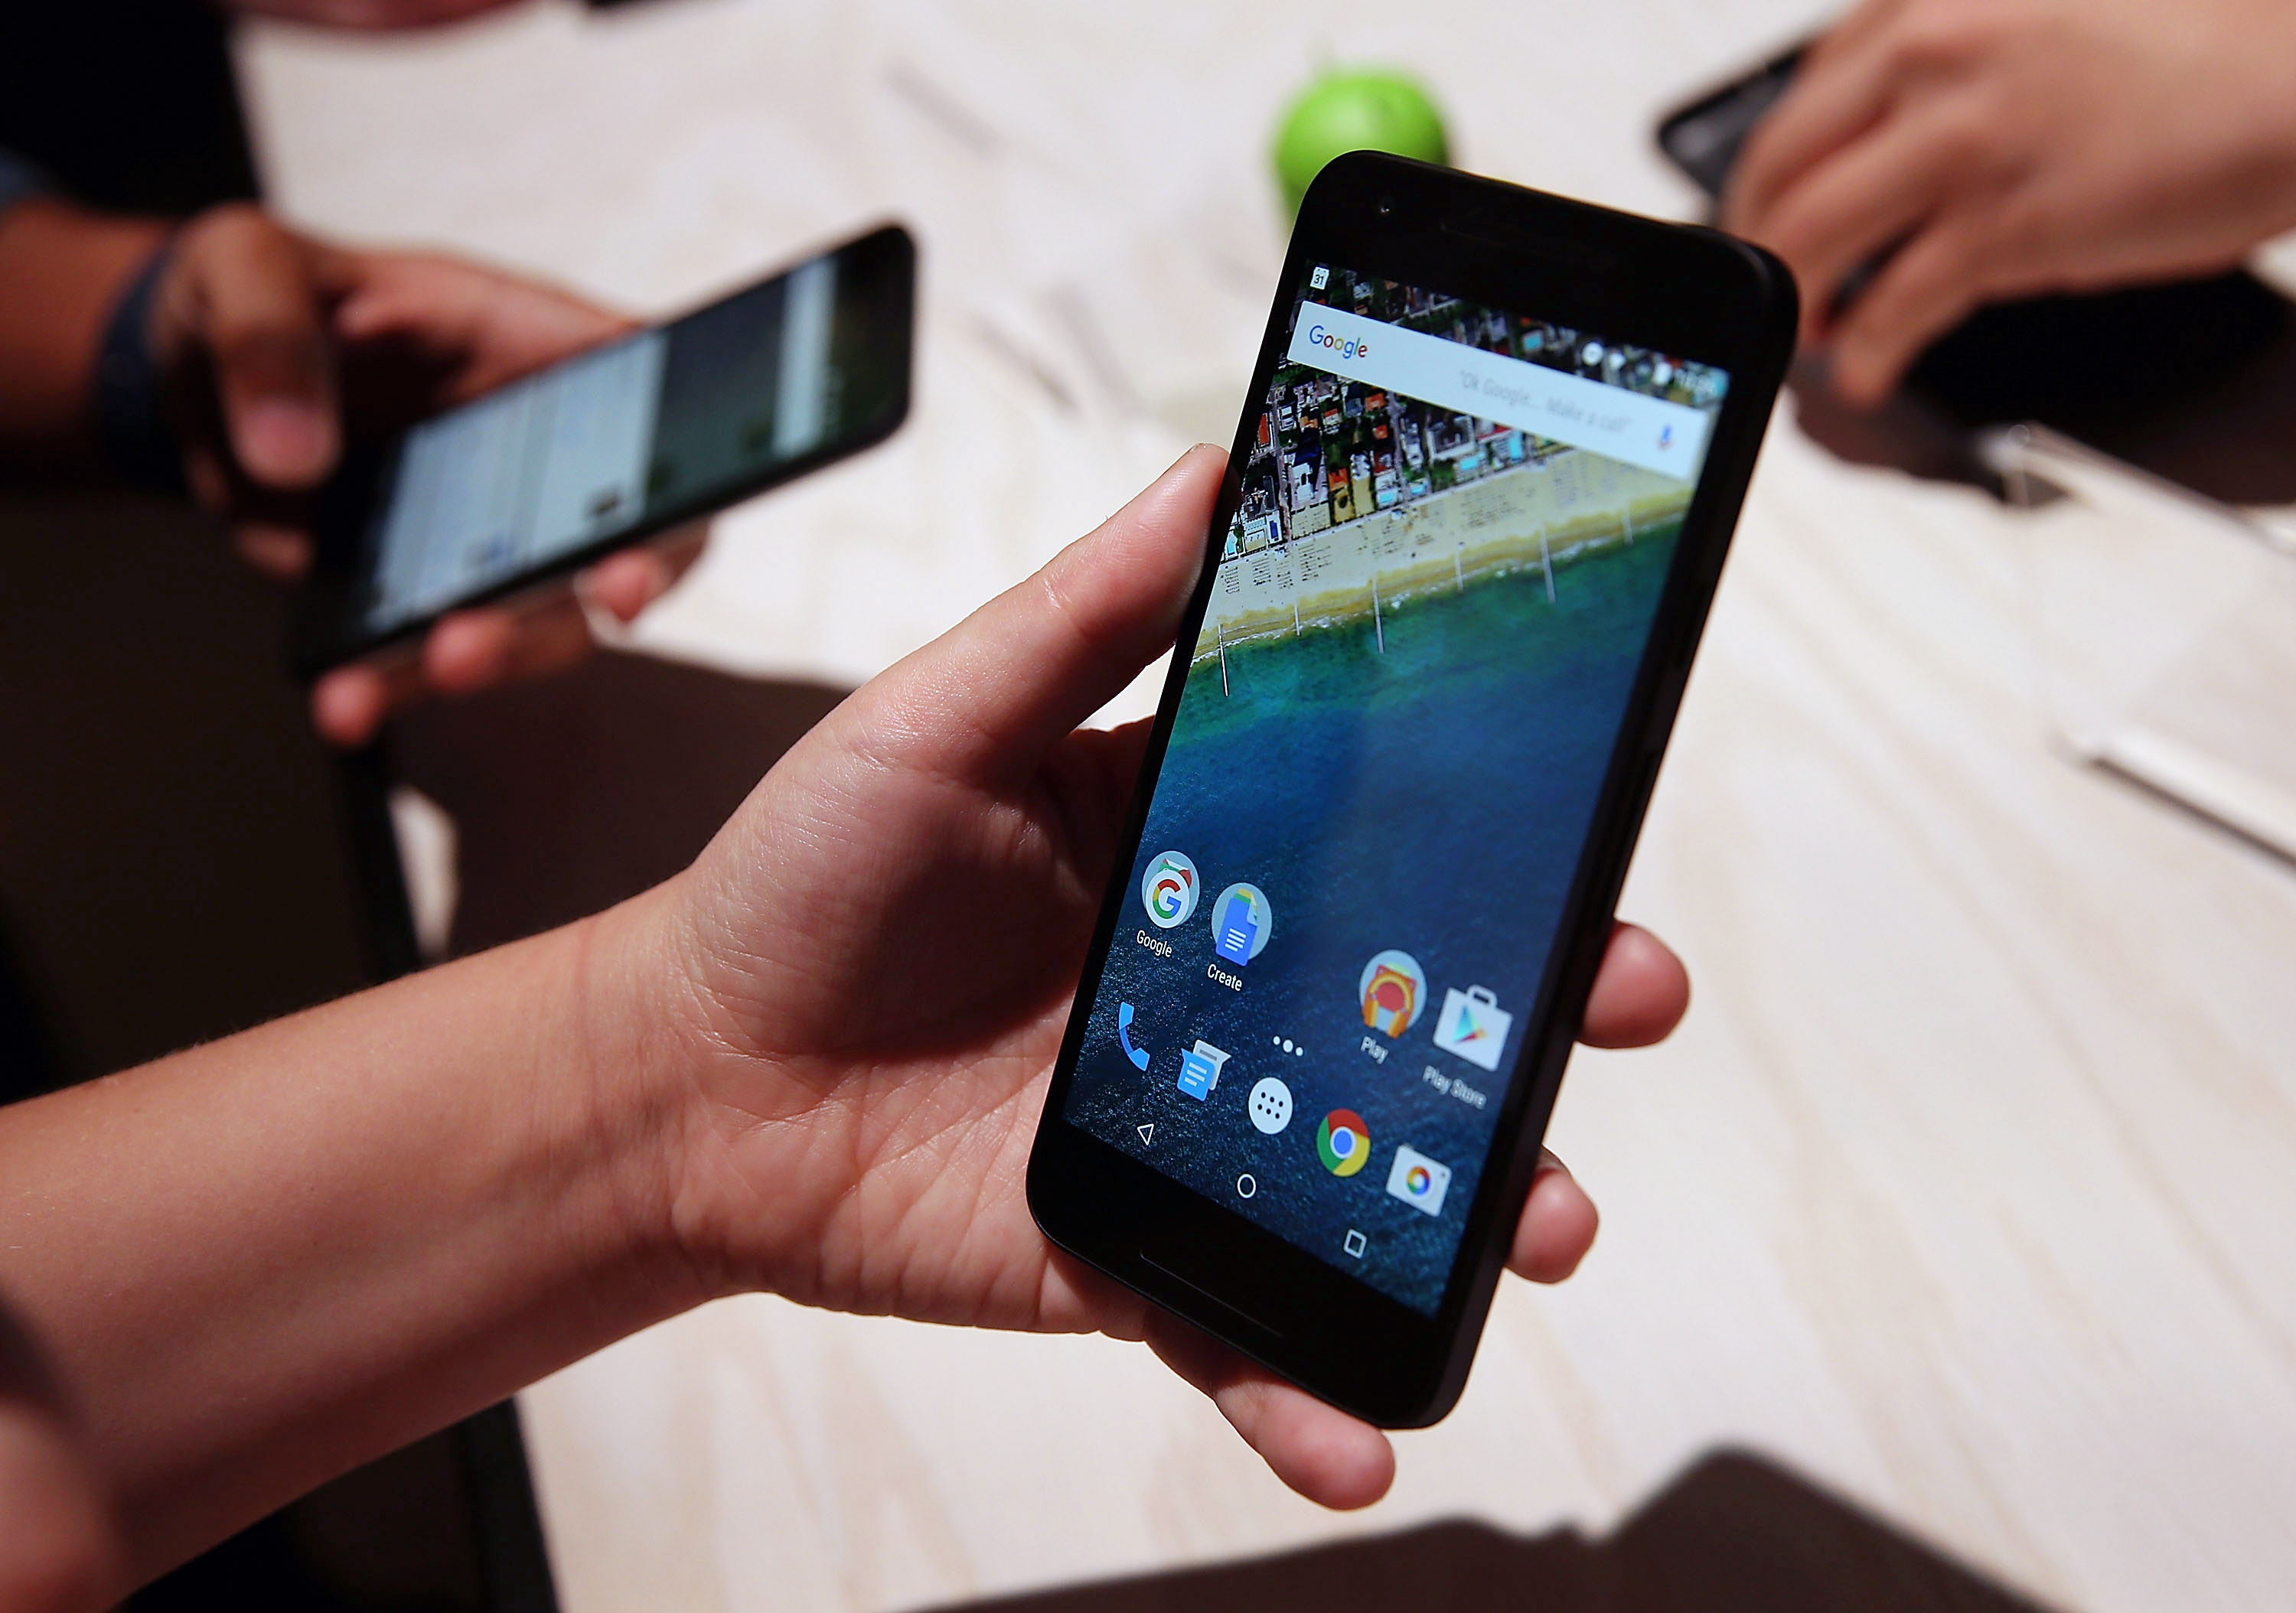 An attendee inspects the new Nexus 5X phone during a Google media event on September 29, 2015 in San Francisco, California.